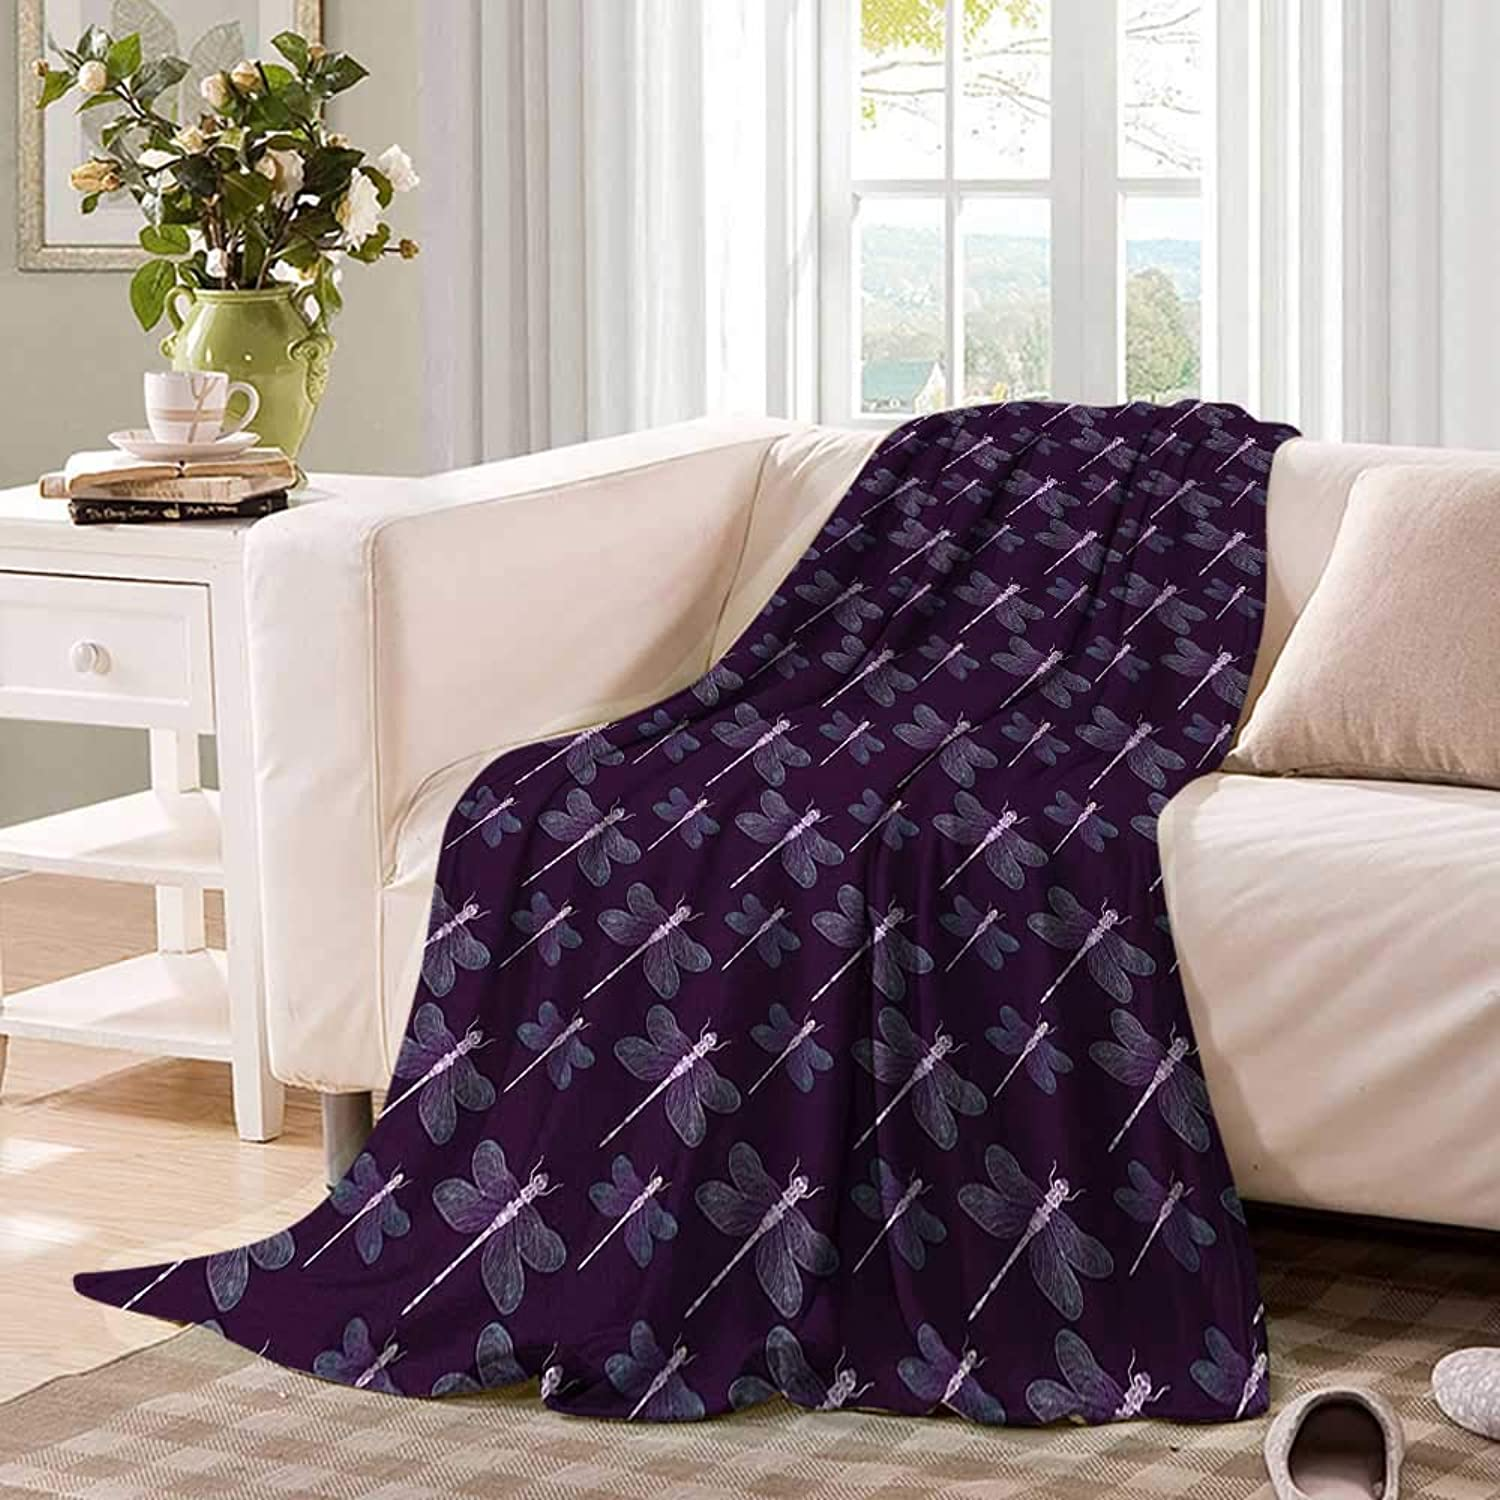 Dragonflyfluffy blanketTropical Insect with Artistic Ornate Wings on Dark Purple Backdropbed Blanket 60 x50  Dark Purple Aqua purplec